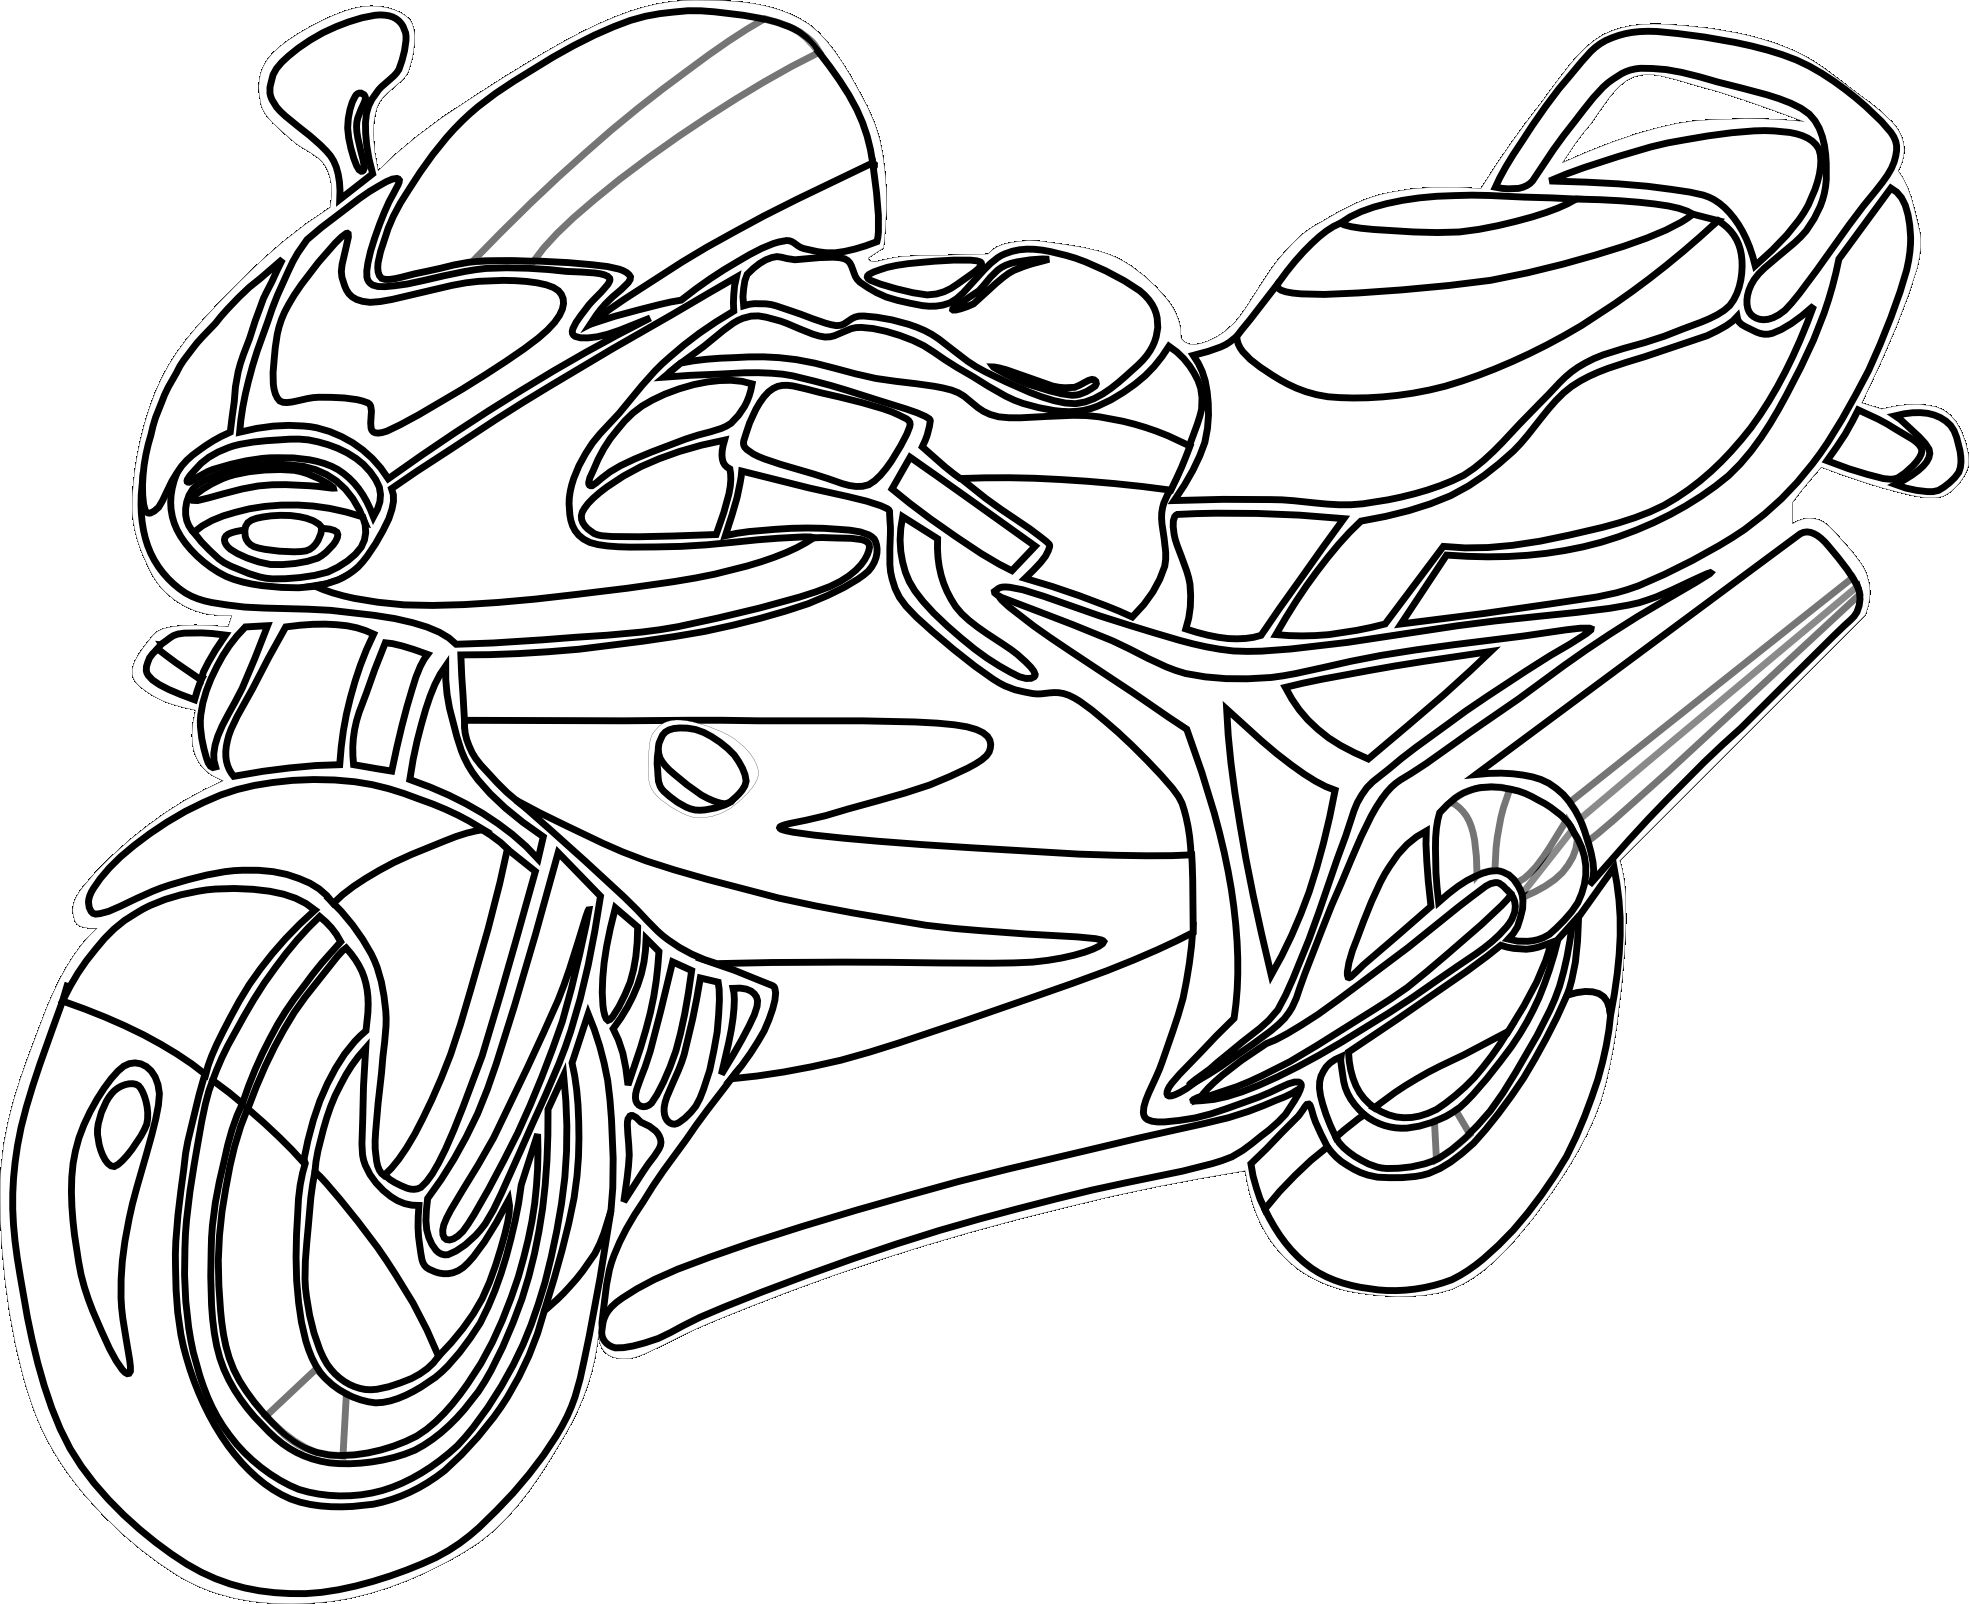 Street Bike Coloring Pages